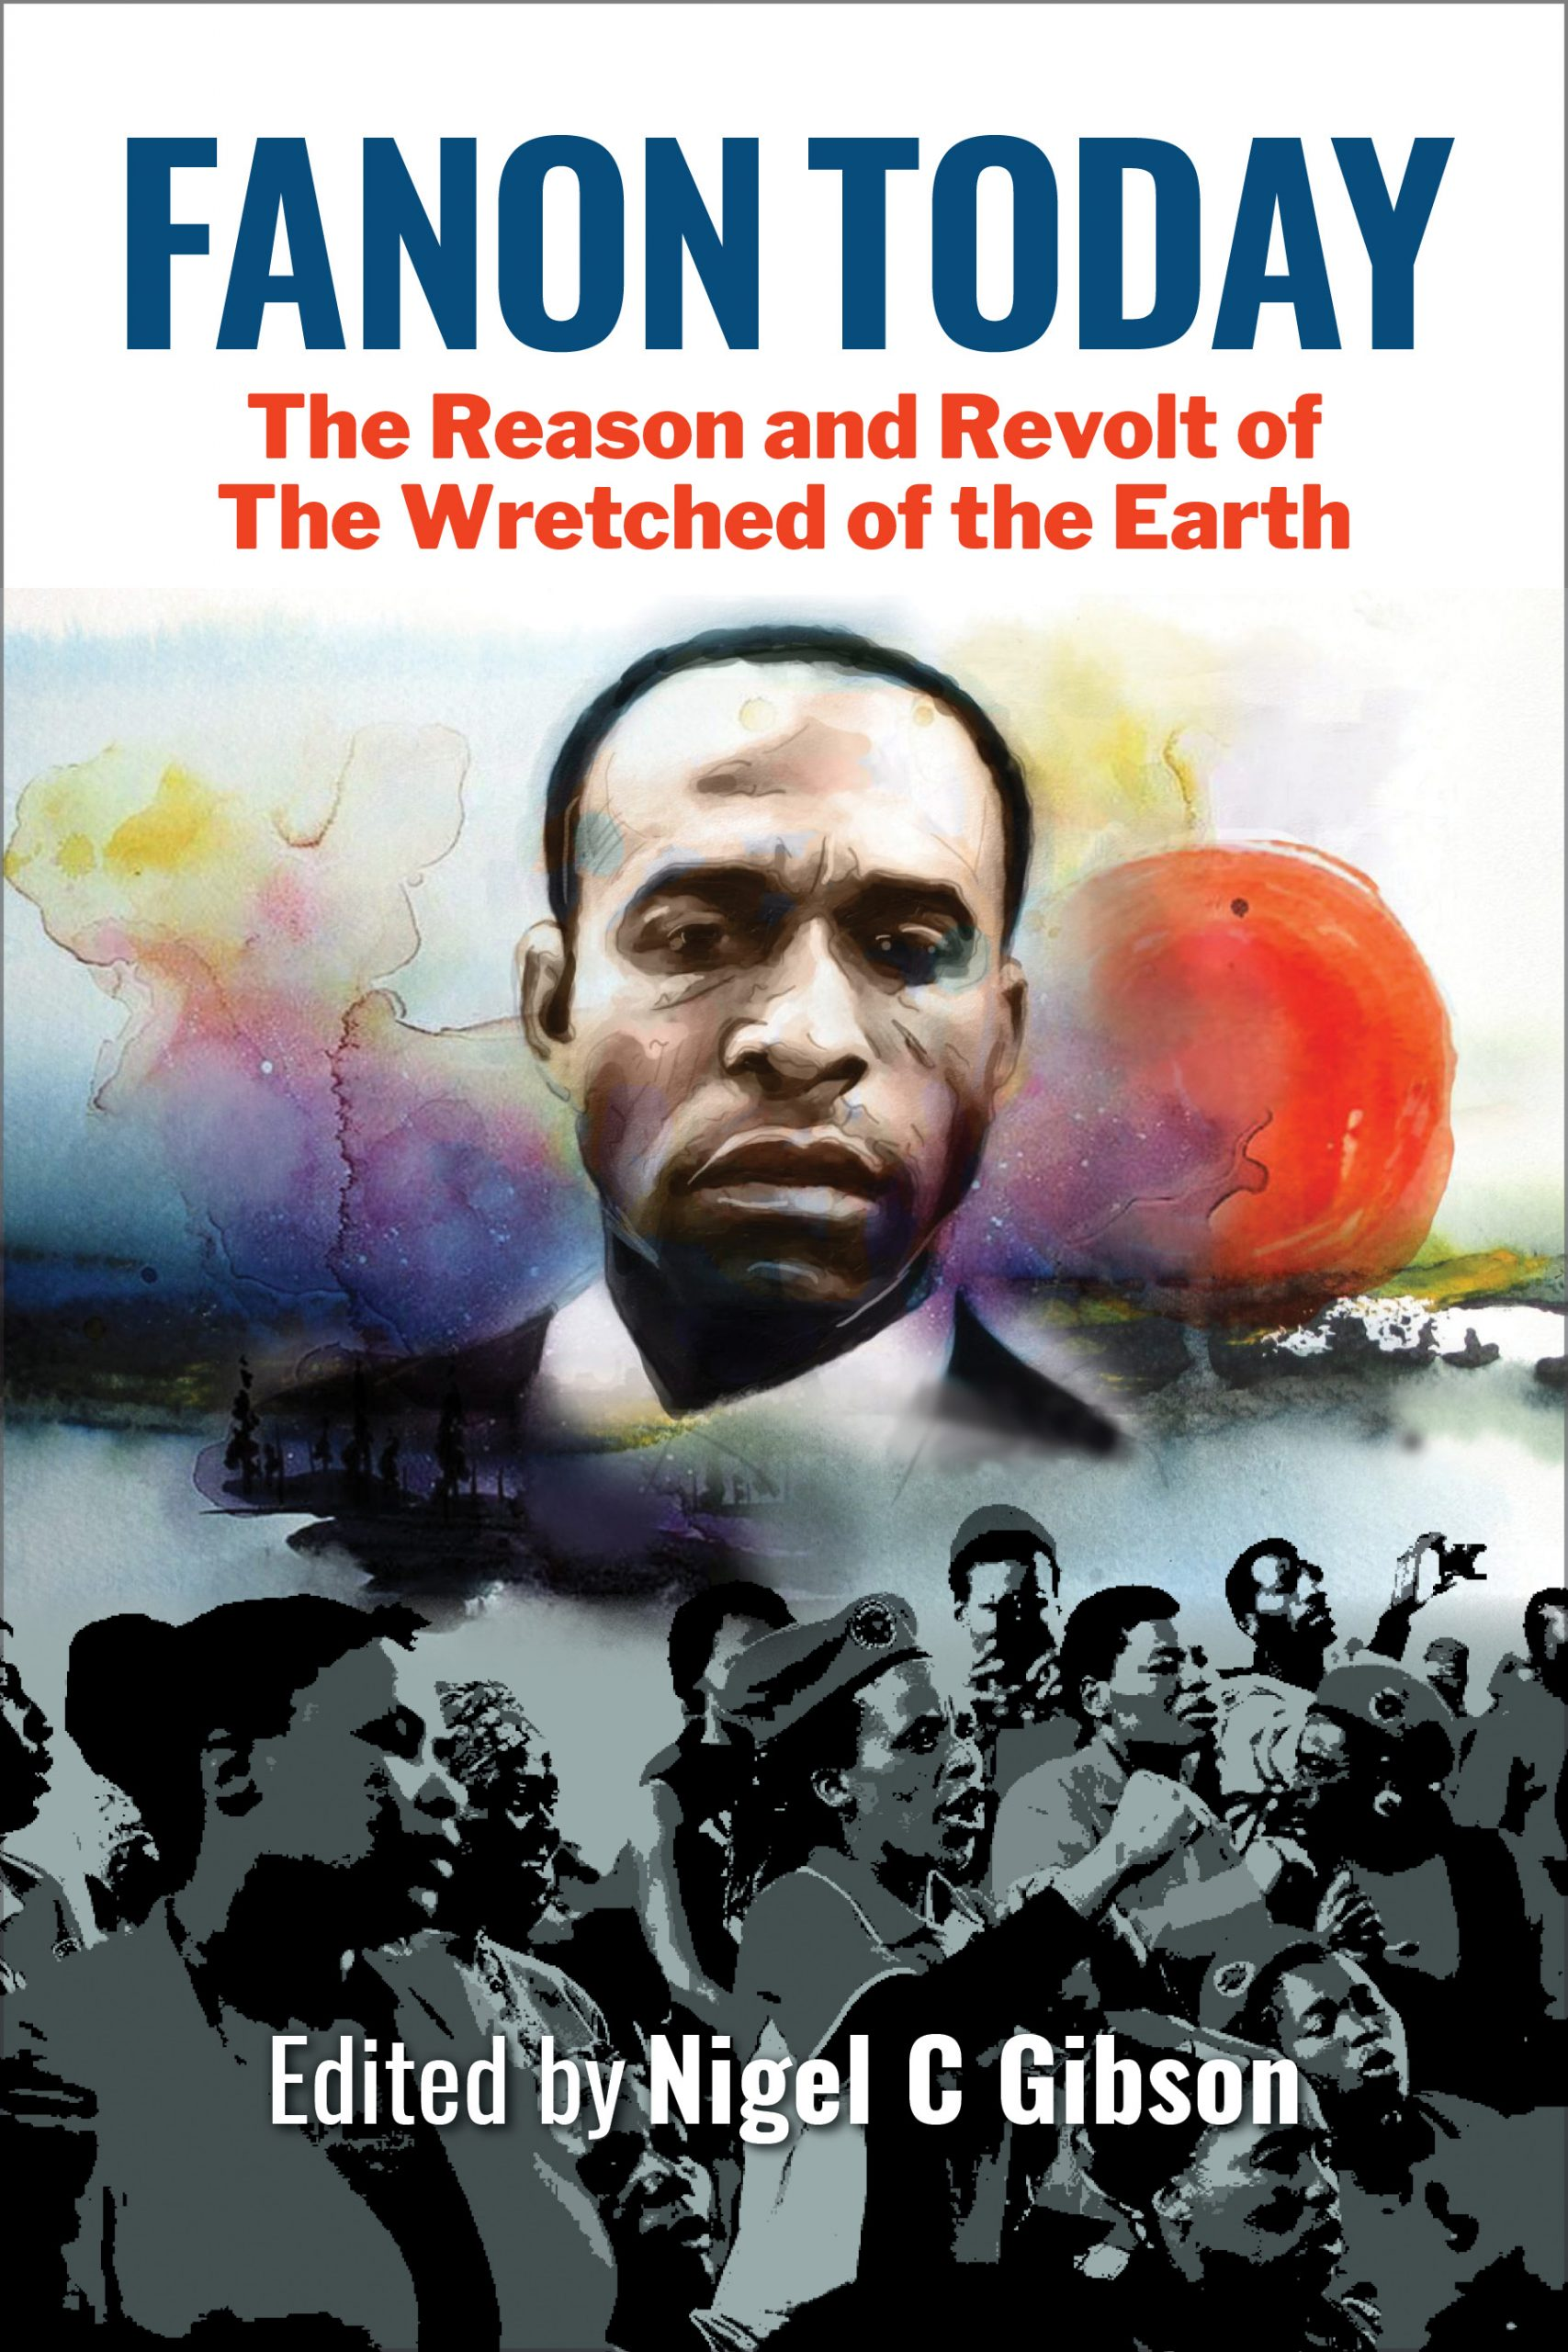 Fanon Today: Reason and Revolt of the Wretched of the Earth